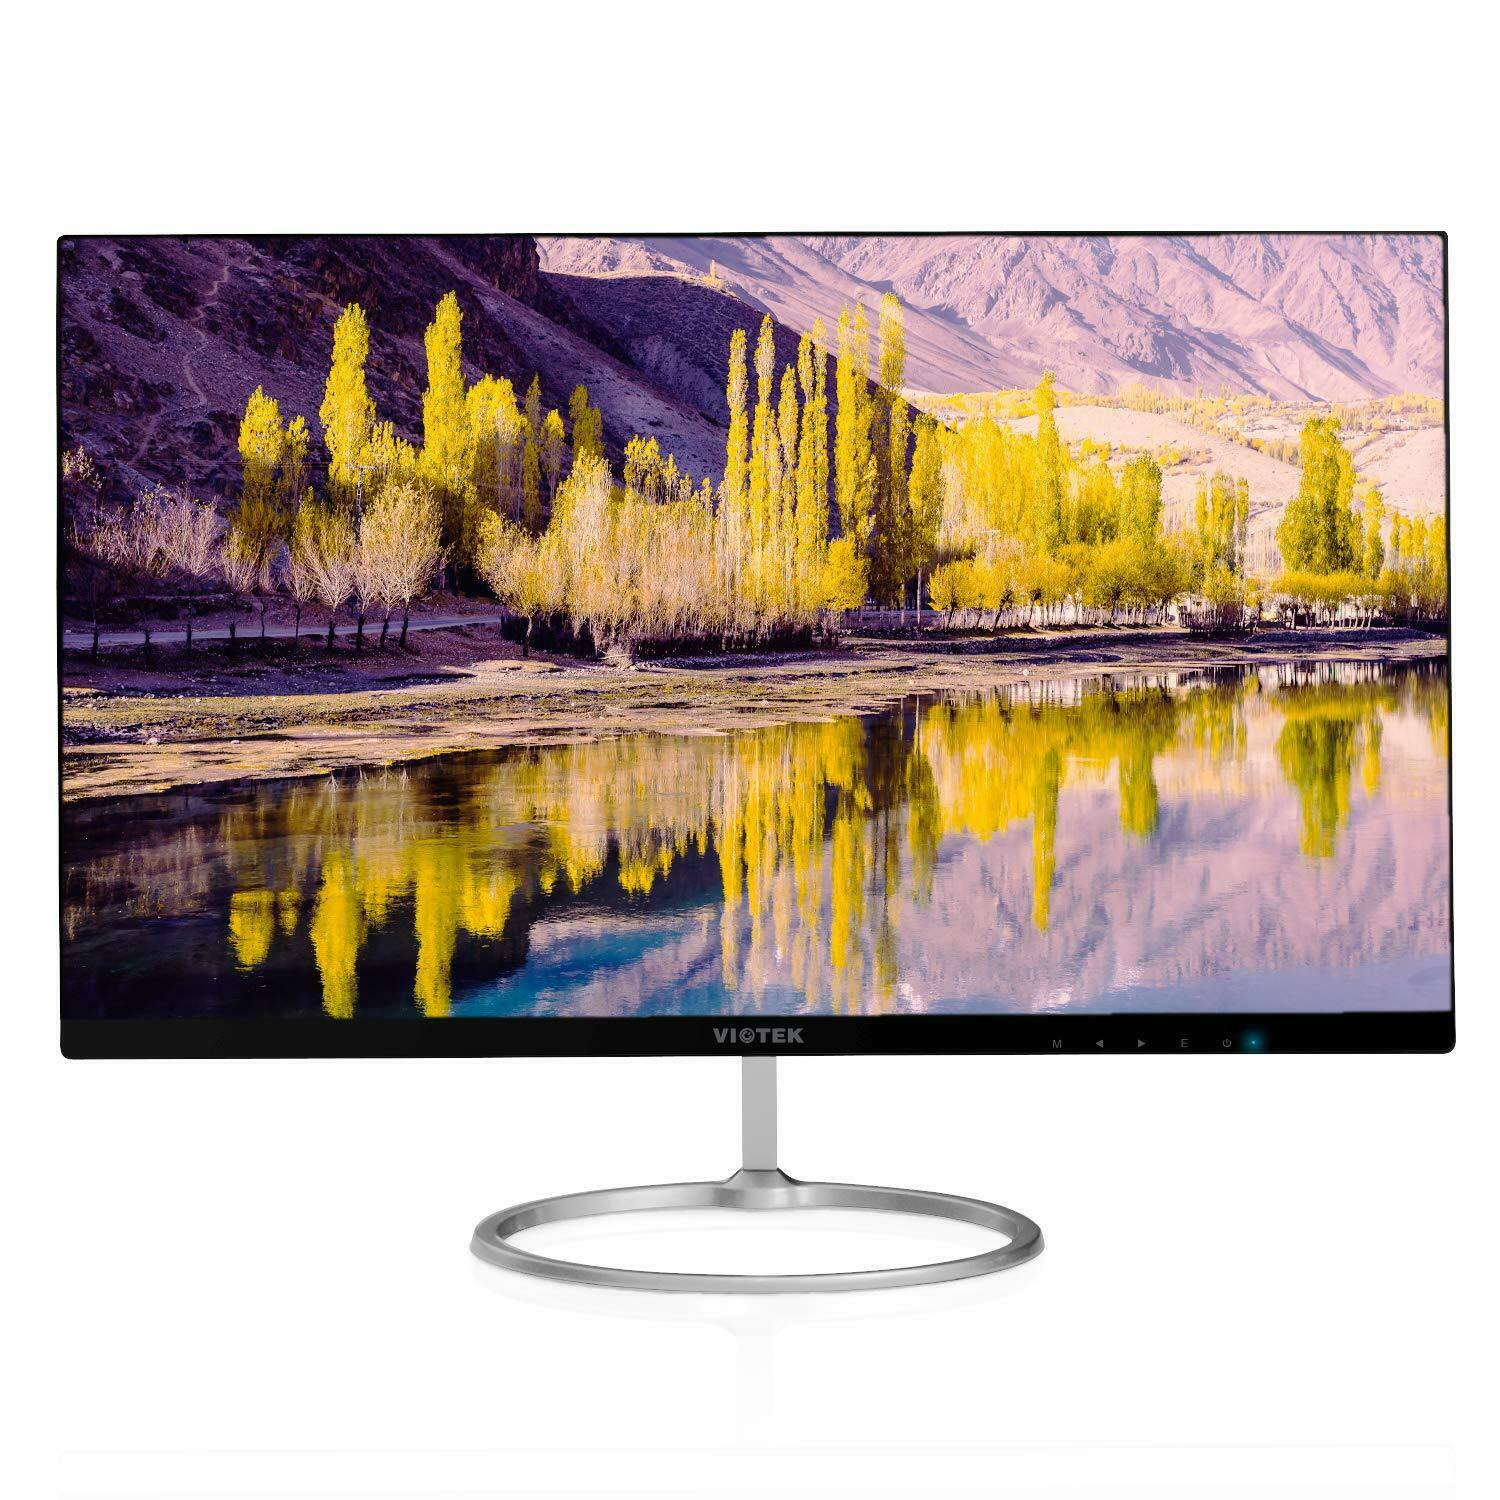 VIOTEK HA238 24-Inch Ultra-Thin Computer Monitor Full HD 192